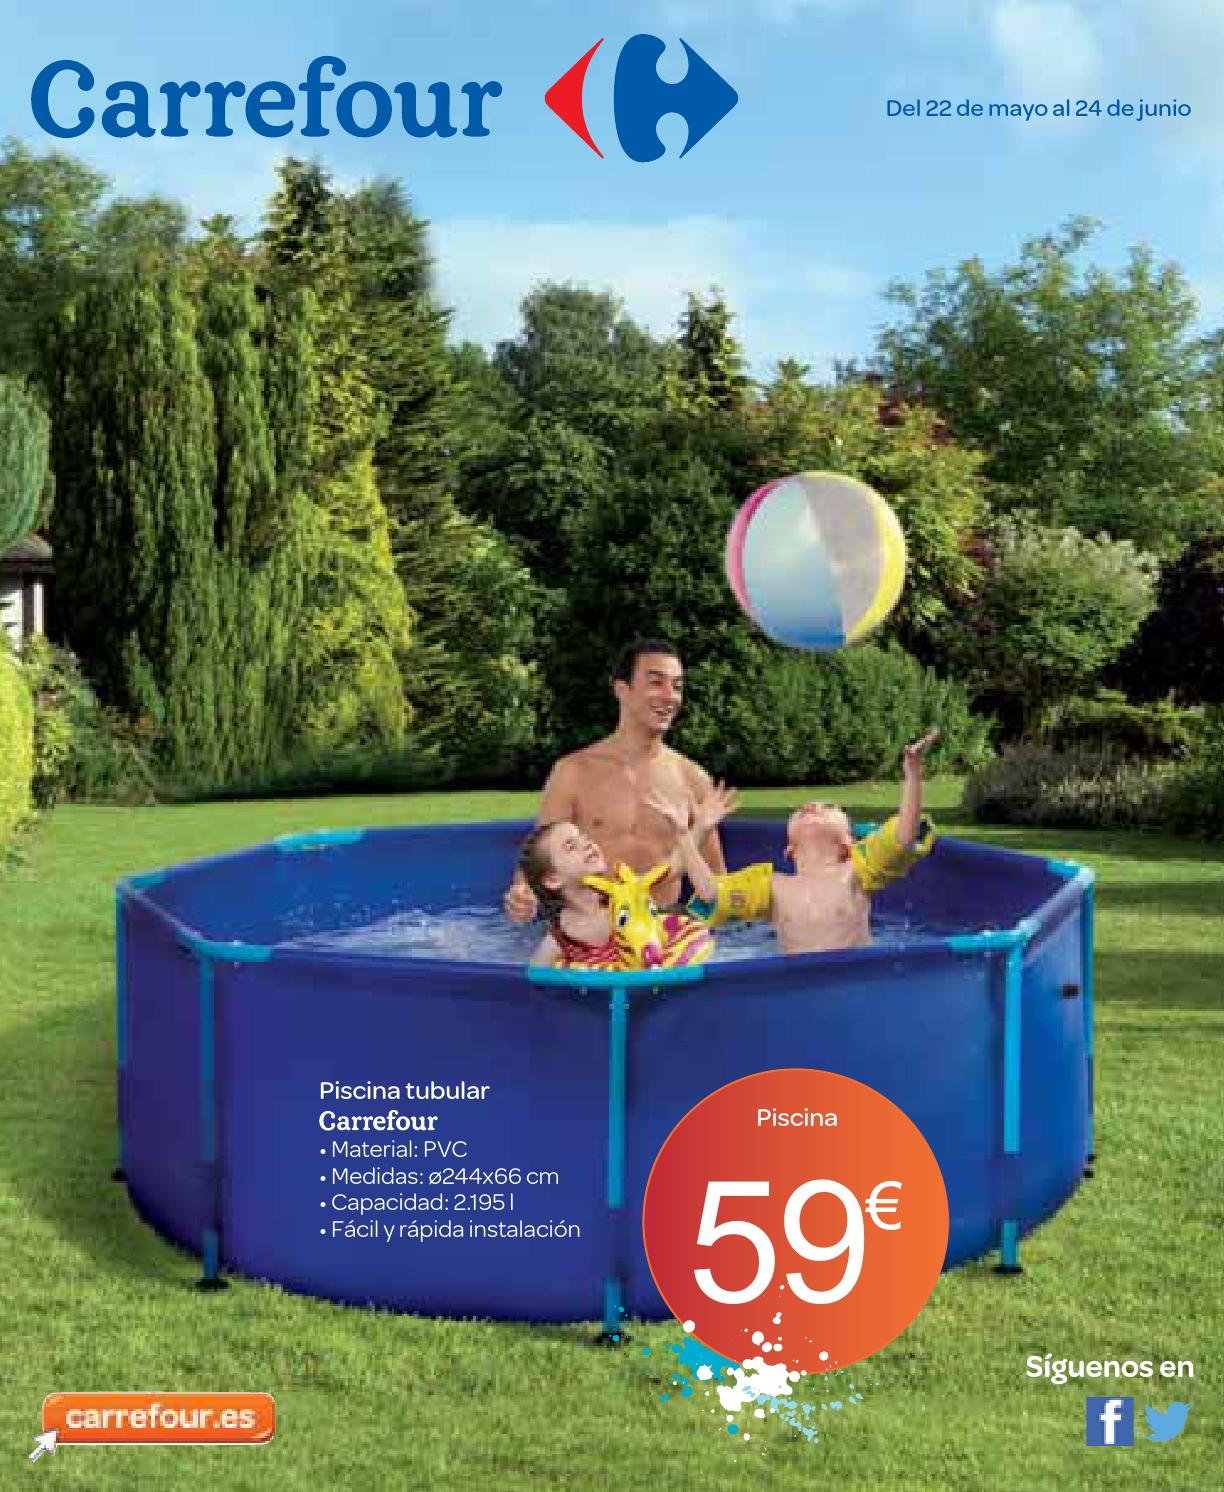 Piscina desmontable en carrefour for Ofertas piscinas desmontables